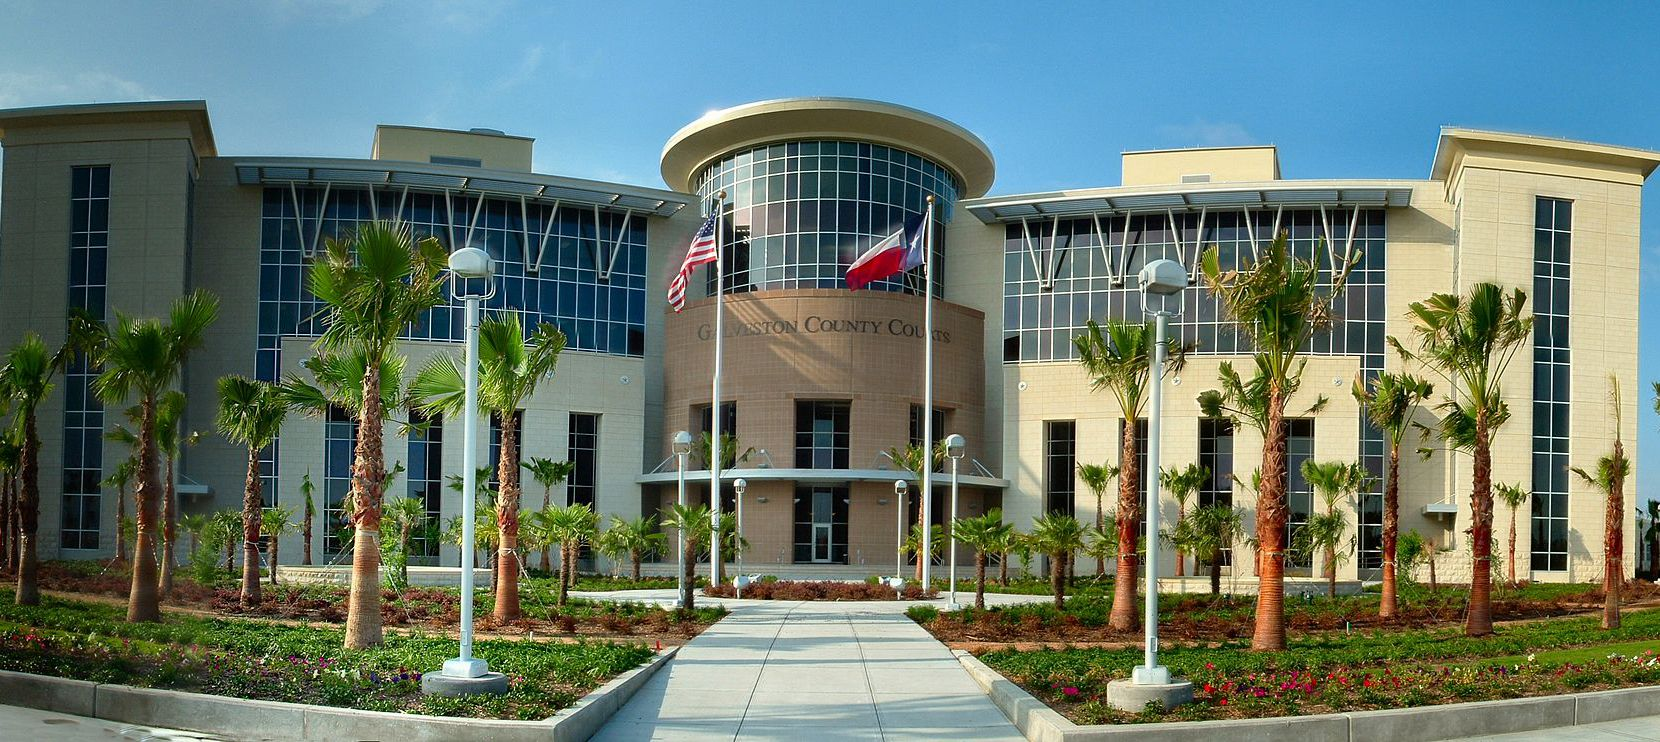 It's not only individuals who get scammed. Sometimes government gets scammed, too. Both Crowley ISD and Galveston County were recently hoodwinked when employees sent money to scammers. Learn from their mistakes.